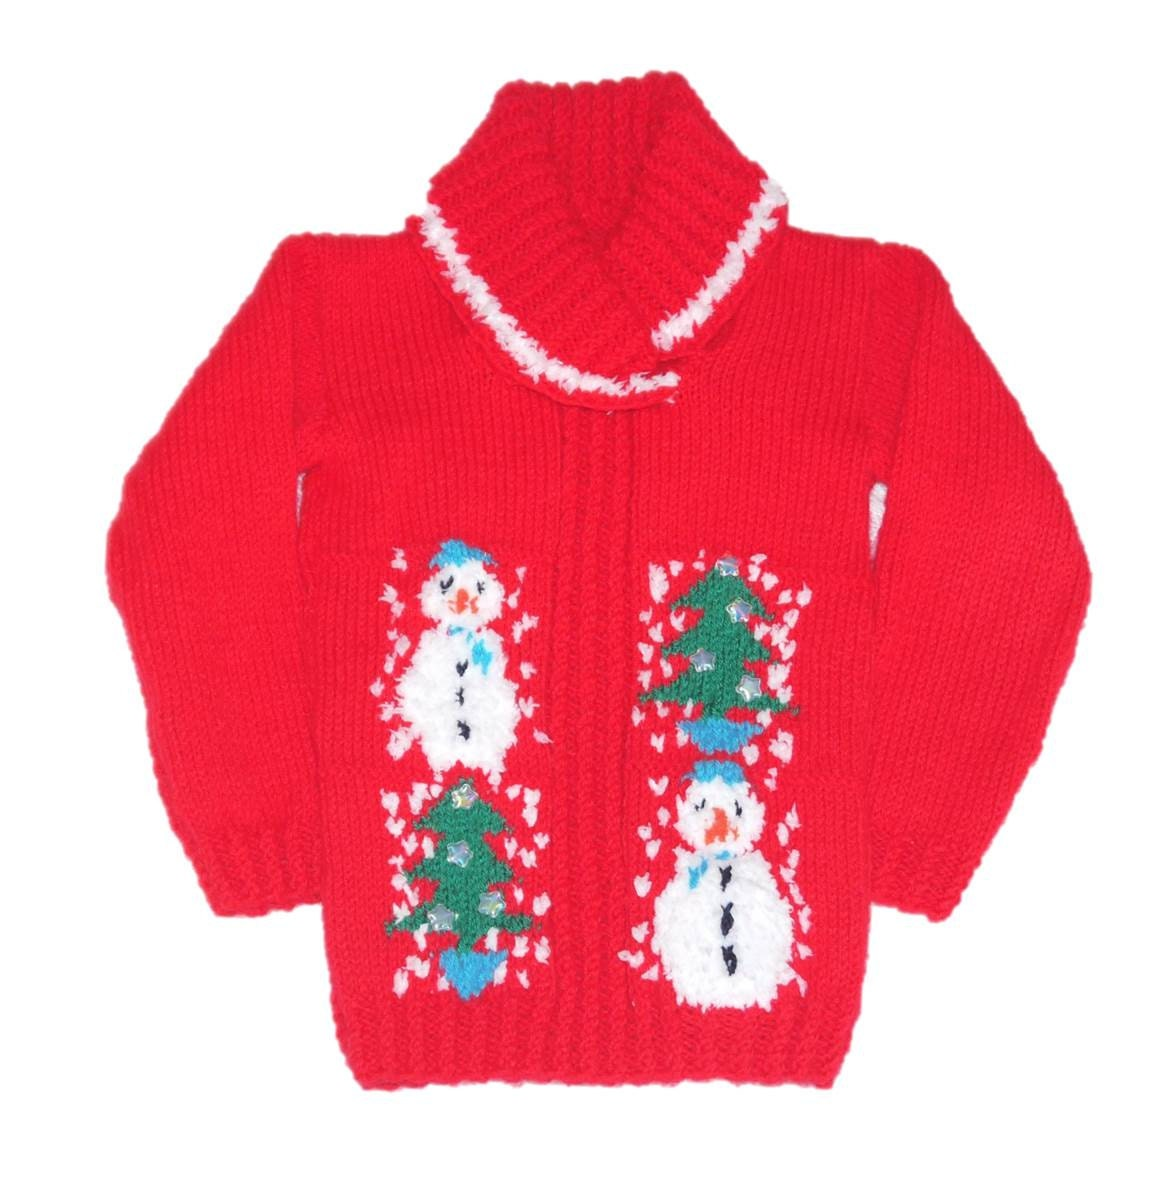 Christmas Sweater Knitting Pattern, Xmas Knitting Pattern, Christmas Knitting...